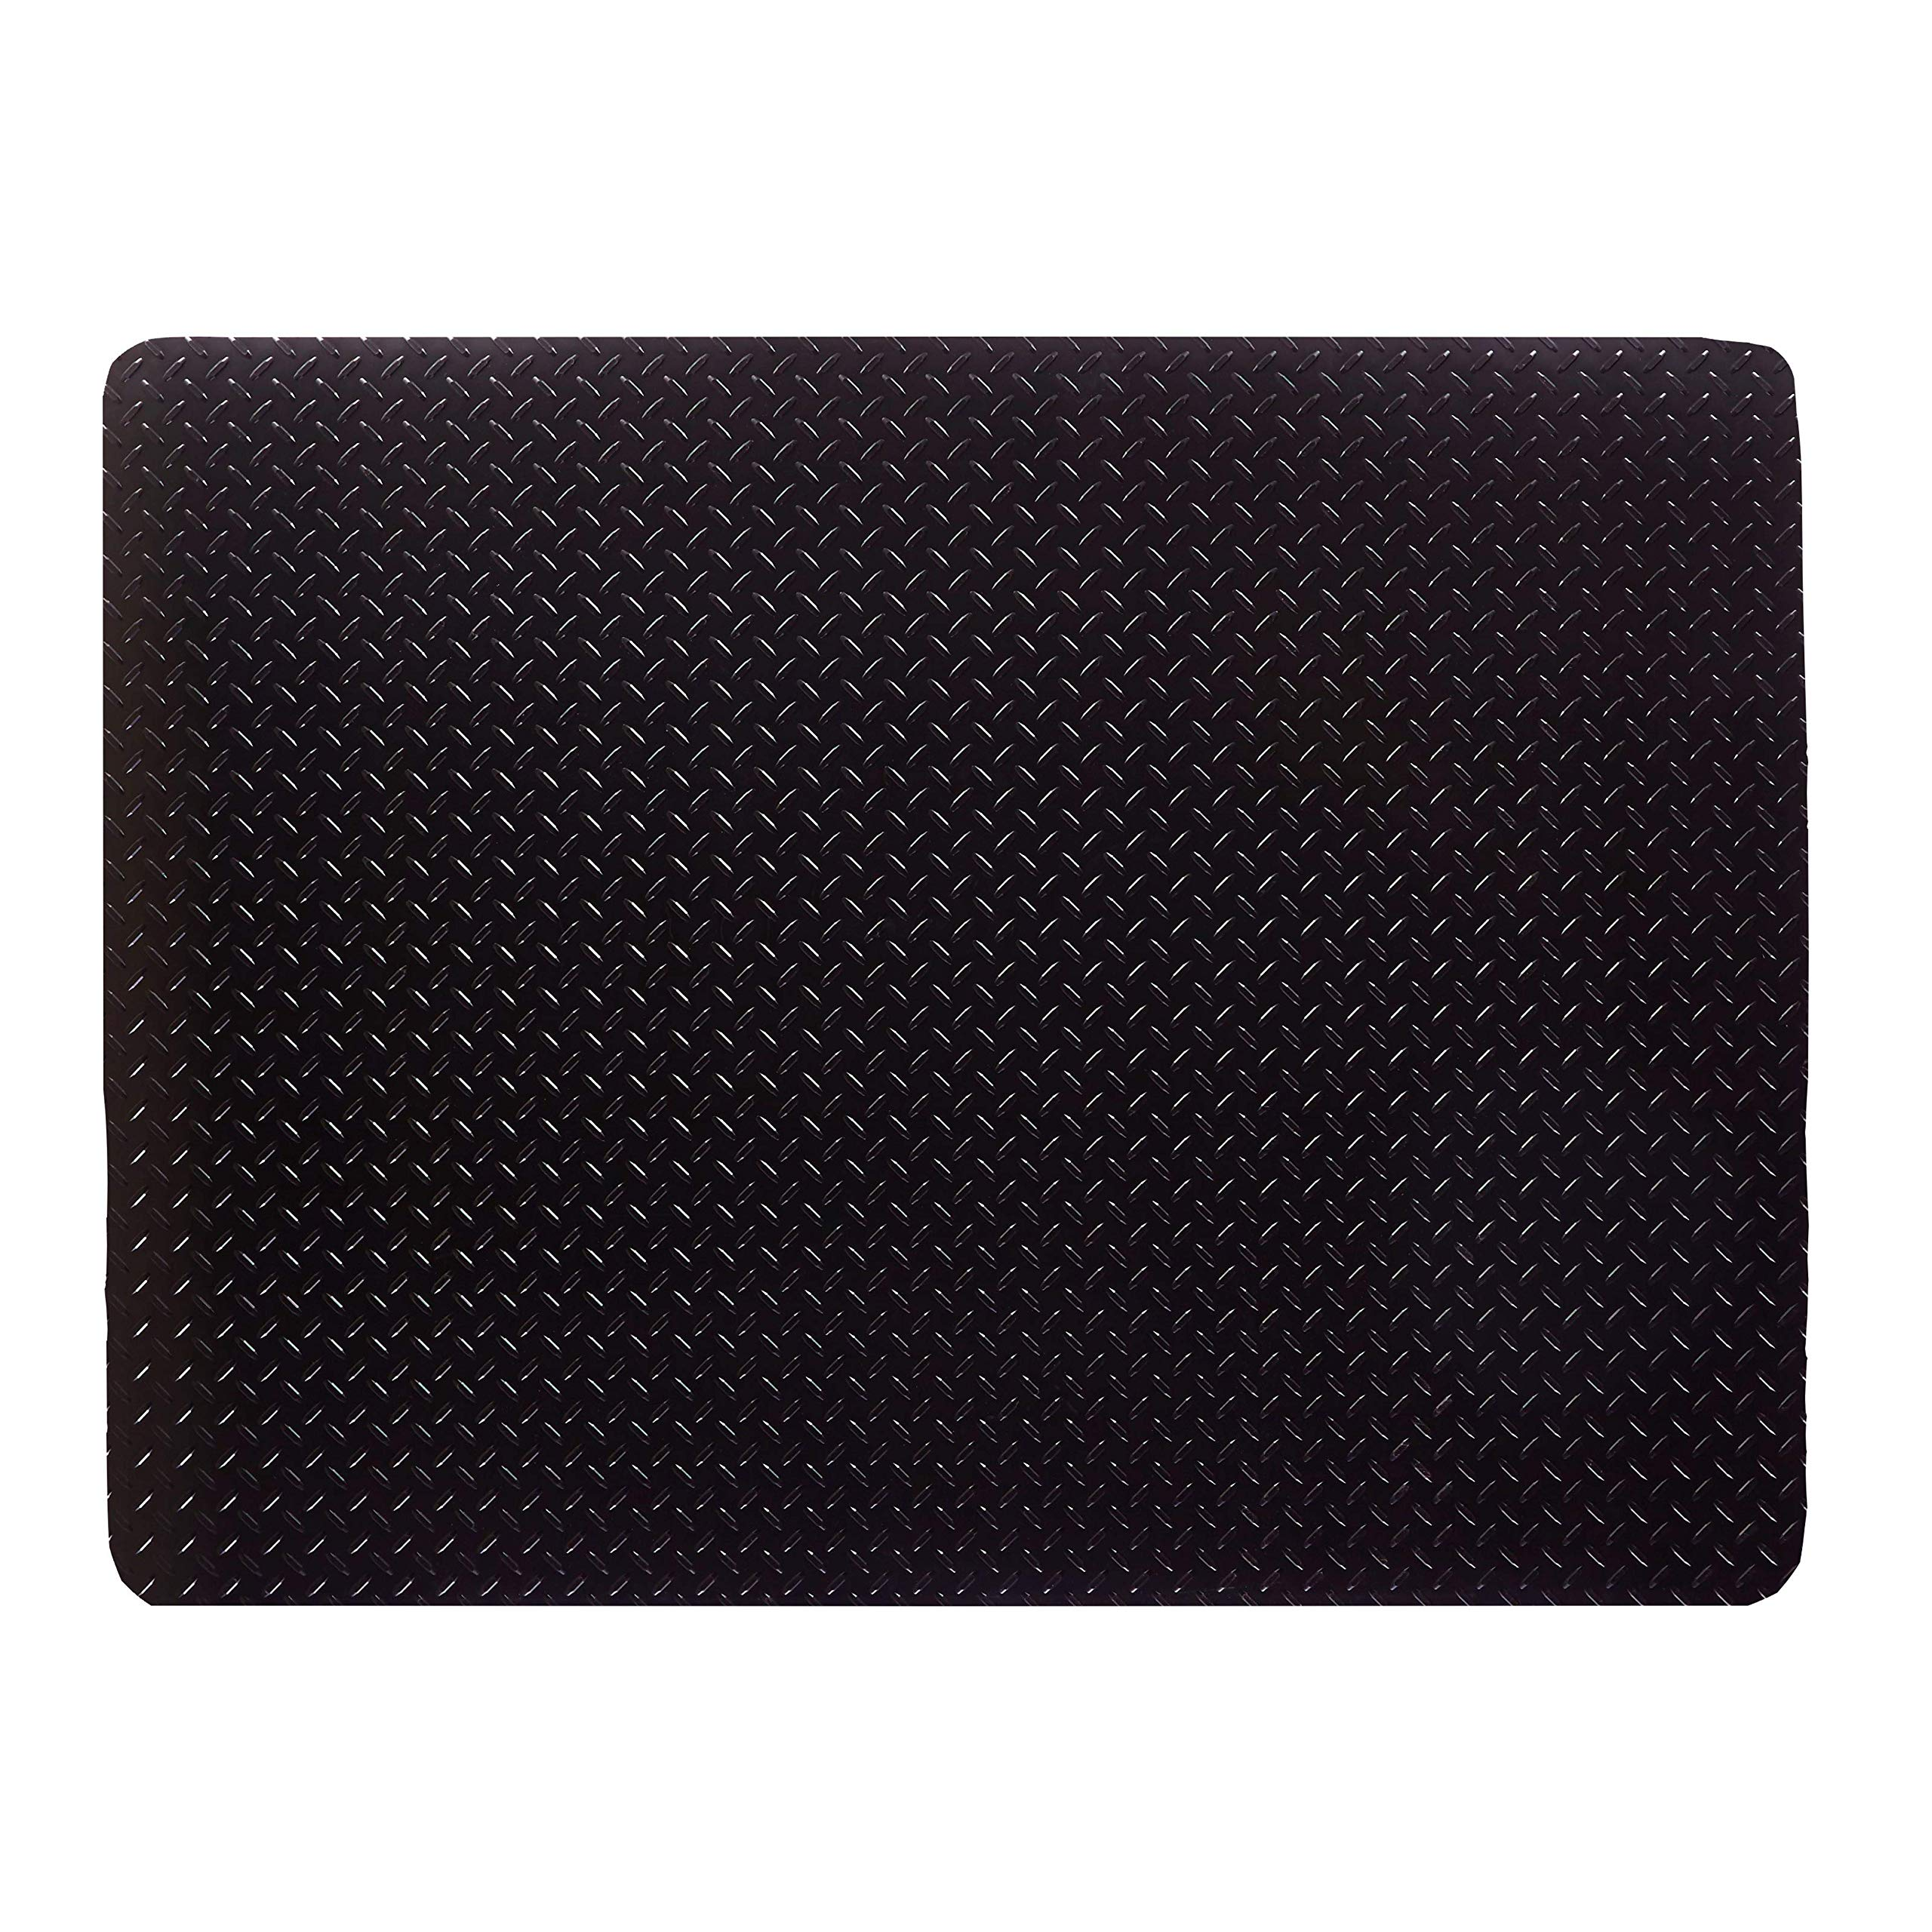 Reslia - Anti-Stain Grill and Garage Protective Mat - Decorative Embossed Diamond Plate Pattern - Black, (3 Feet x 4 Feet)